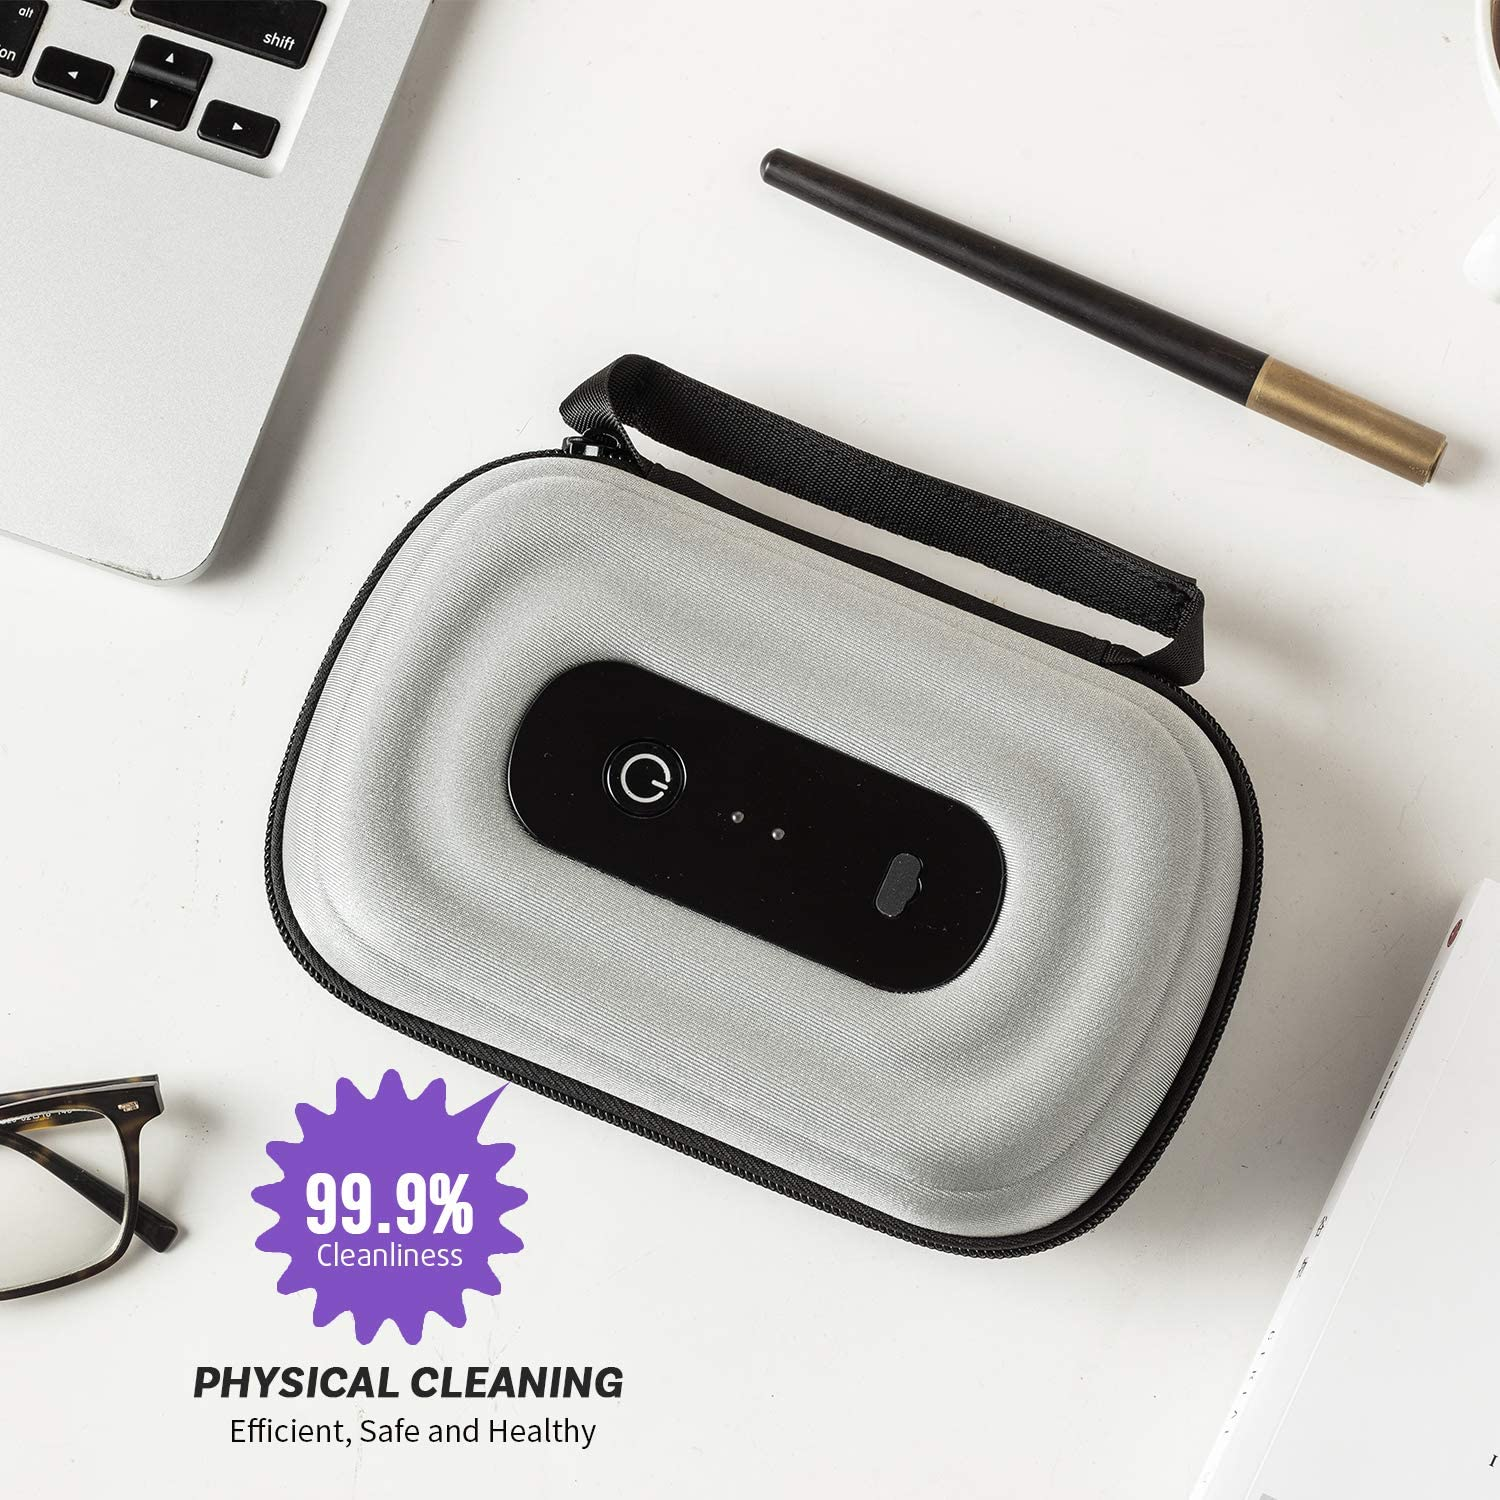 Keys 99.9/% Cleaned in 60s Watches WOLF ARMOR Cell Phone Cleaner Box for iPhone and Android Smartphone Can Be Used About 50+ Times When Fully Charged USB Charging Jewelry and Other Small Objects